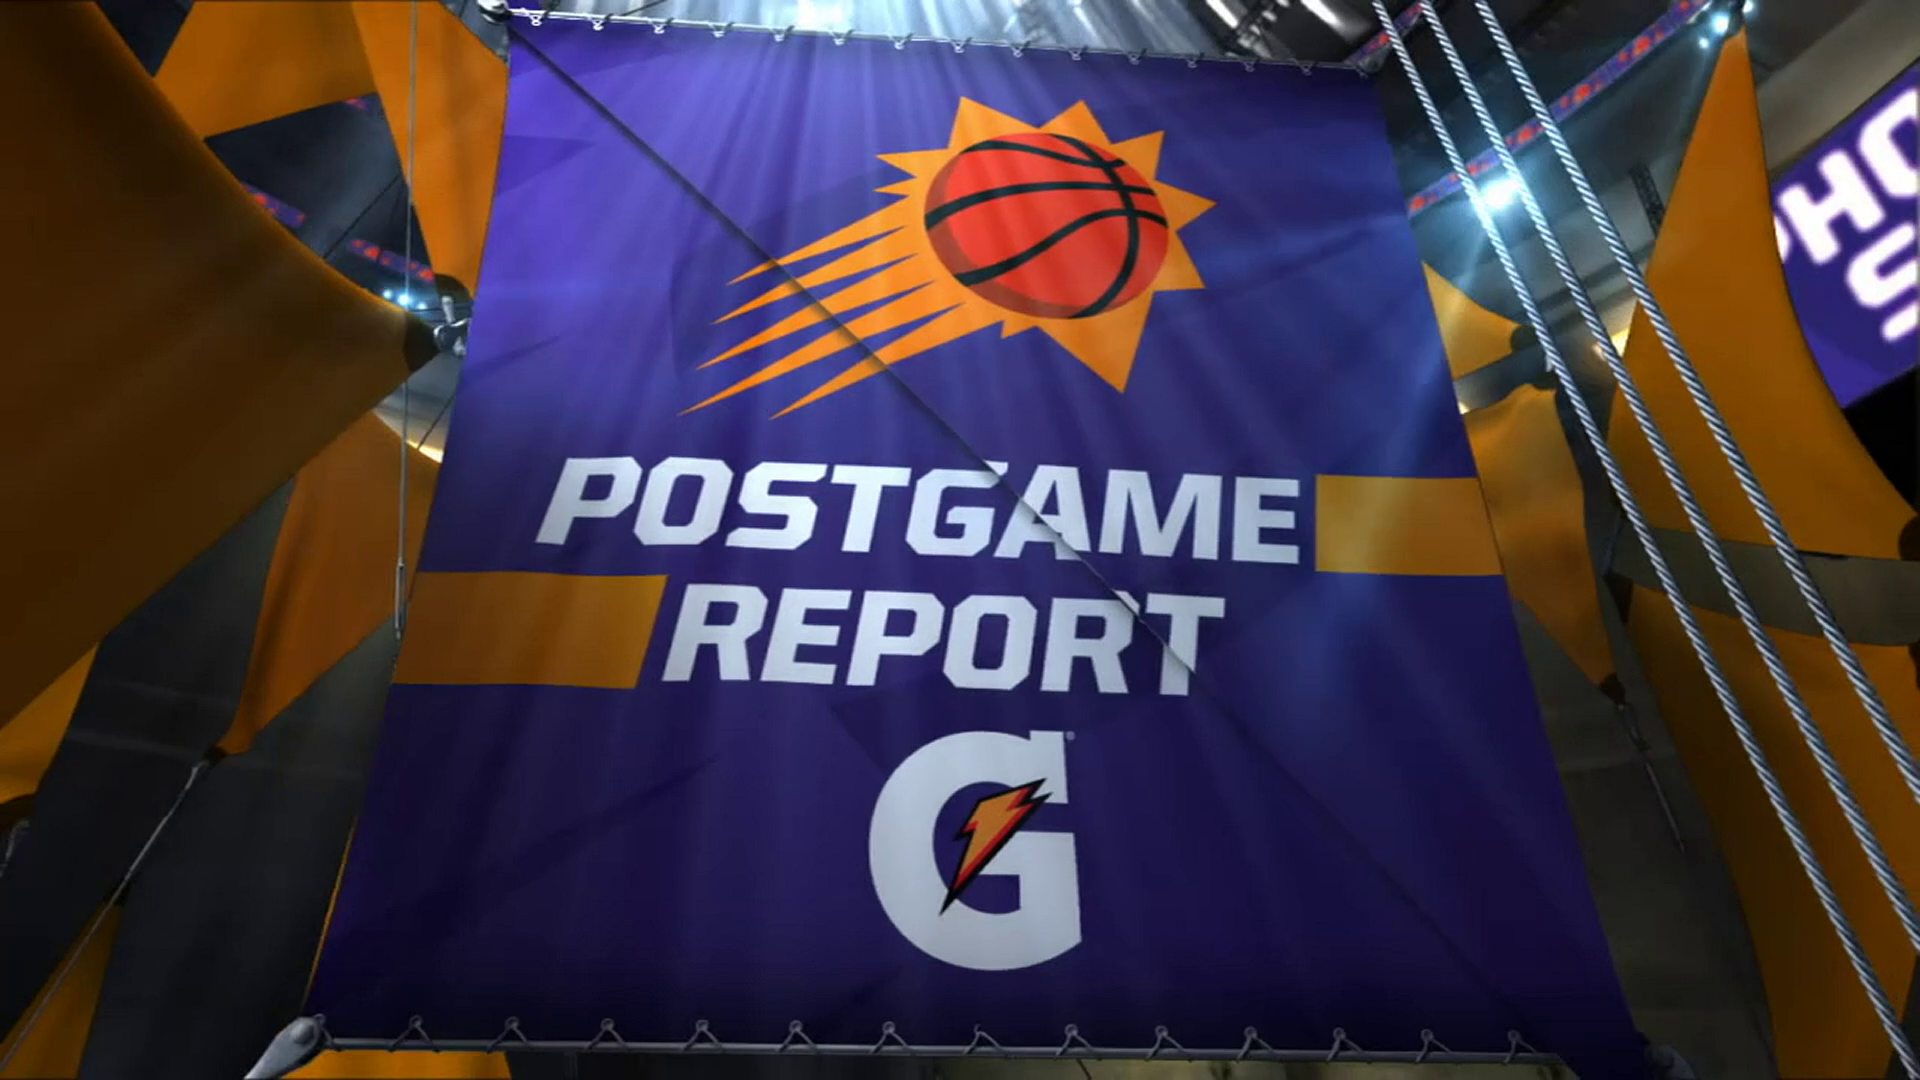 Gatorade Postgame Report: Suns vs. Nuggets 2020-21